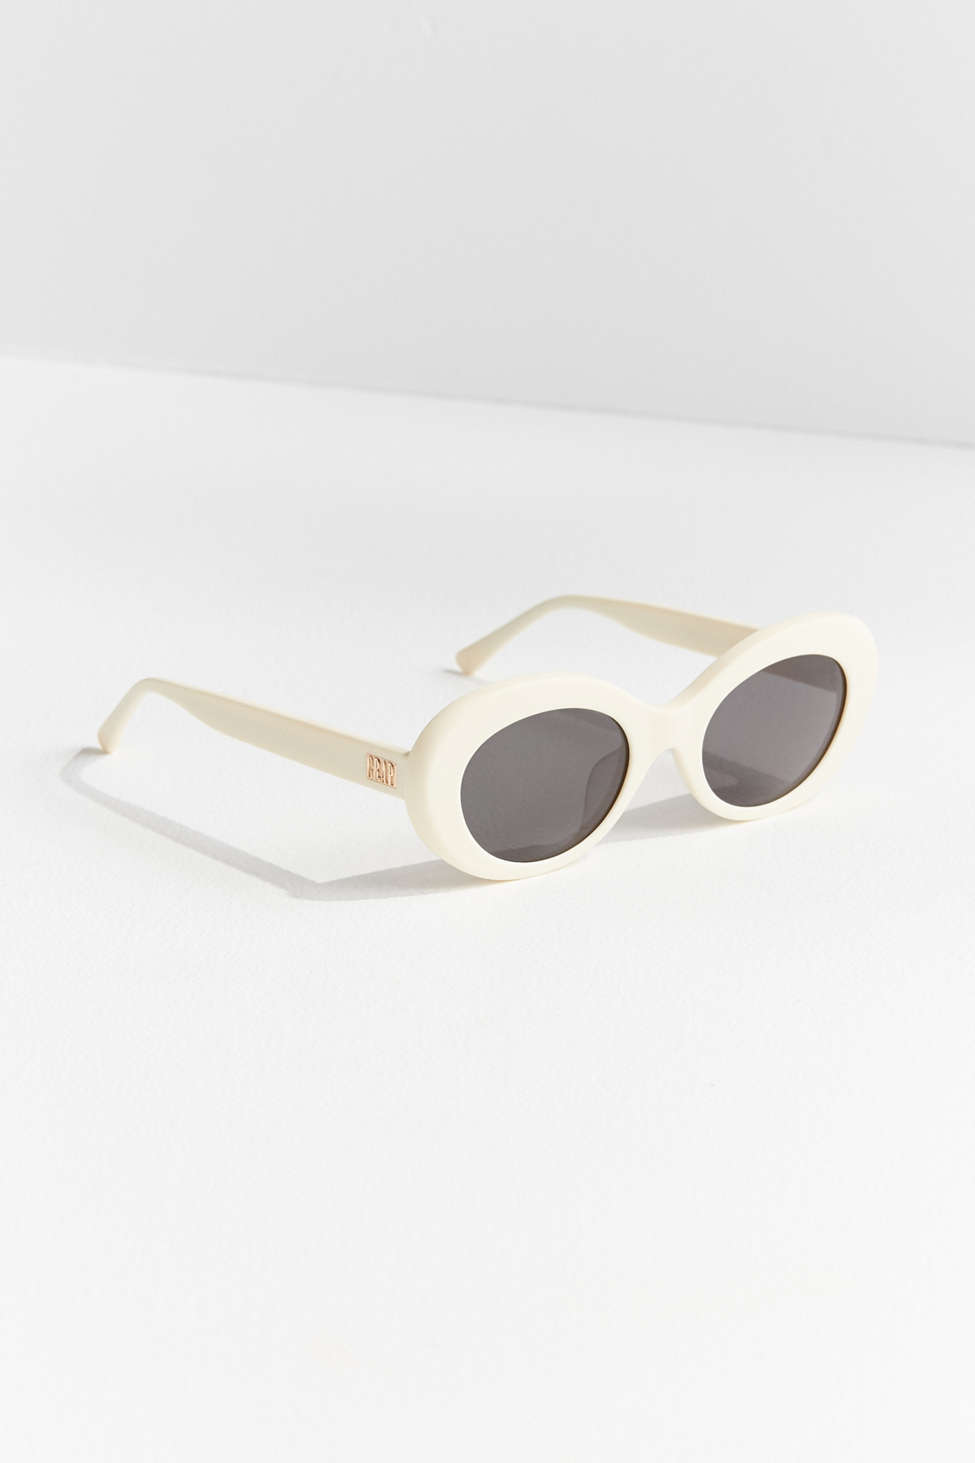 Slide View: 2: Crap Eyewear The Love Tempo Sunglasses